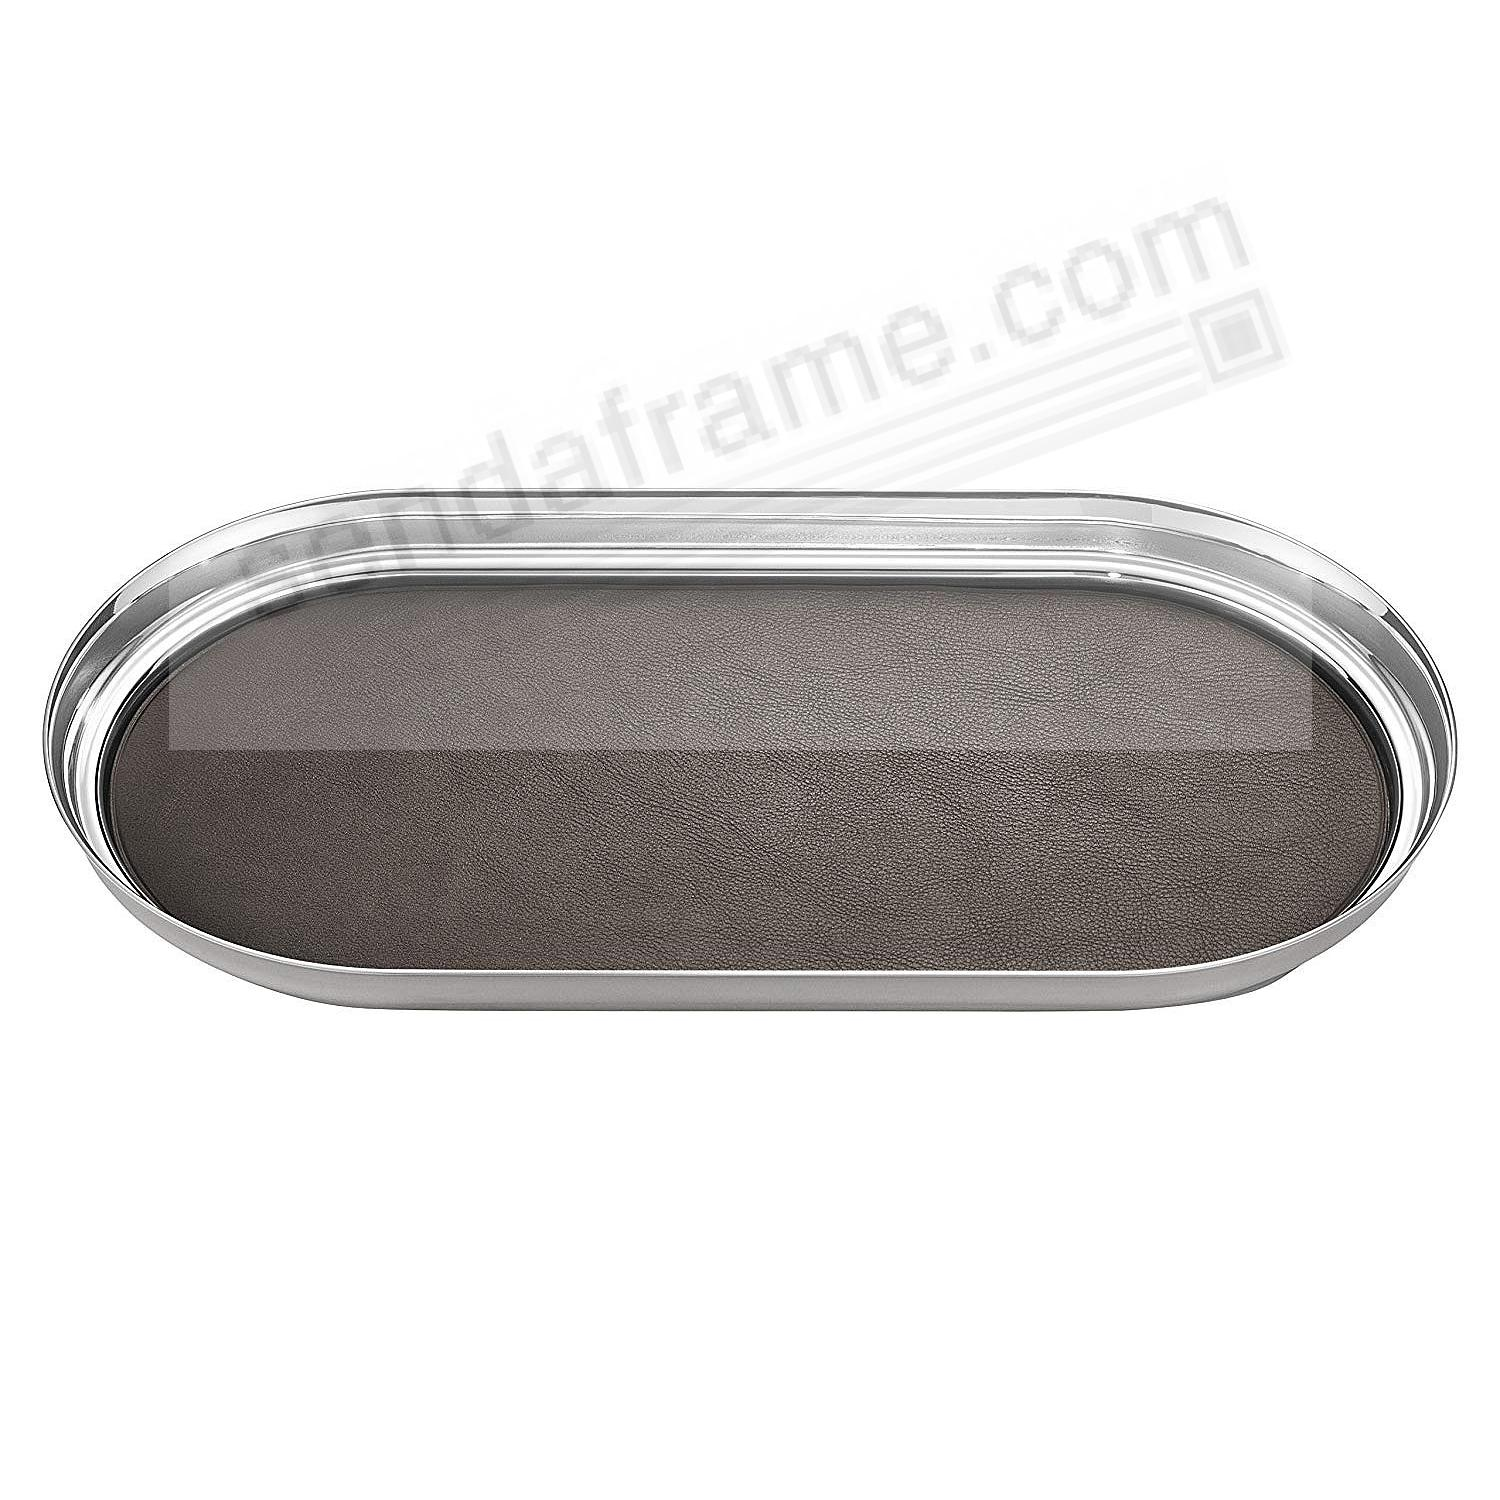 The MANHATTAN TRAY (Small) 13x7 crafted by Georg Jensen®